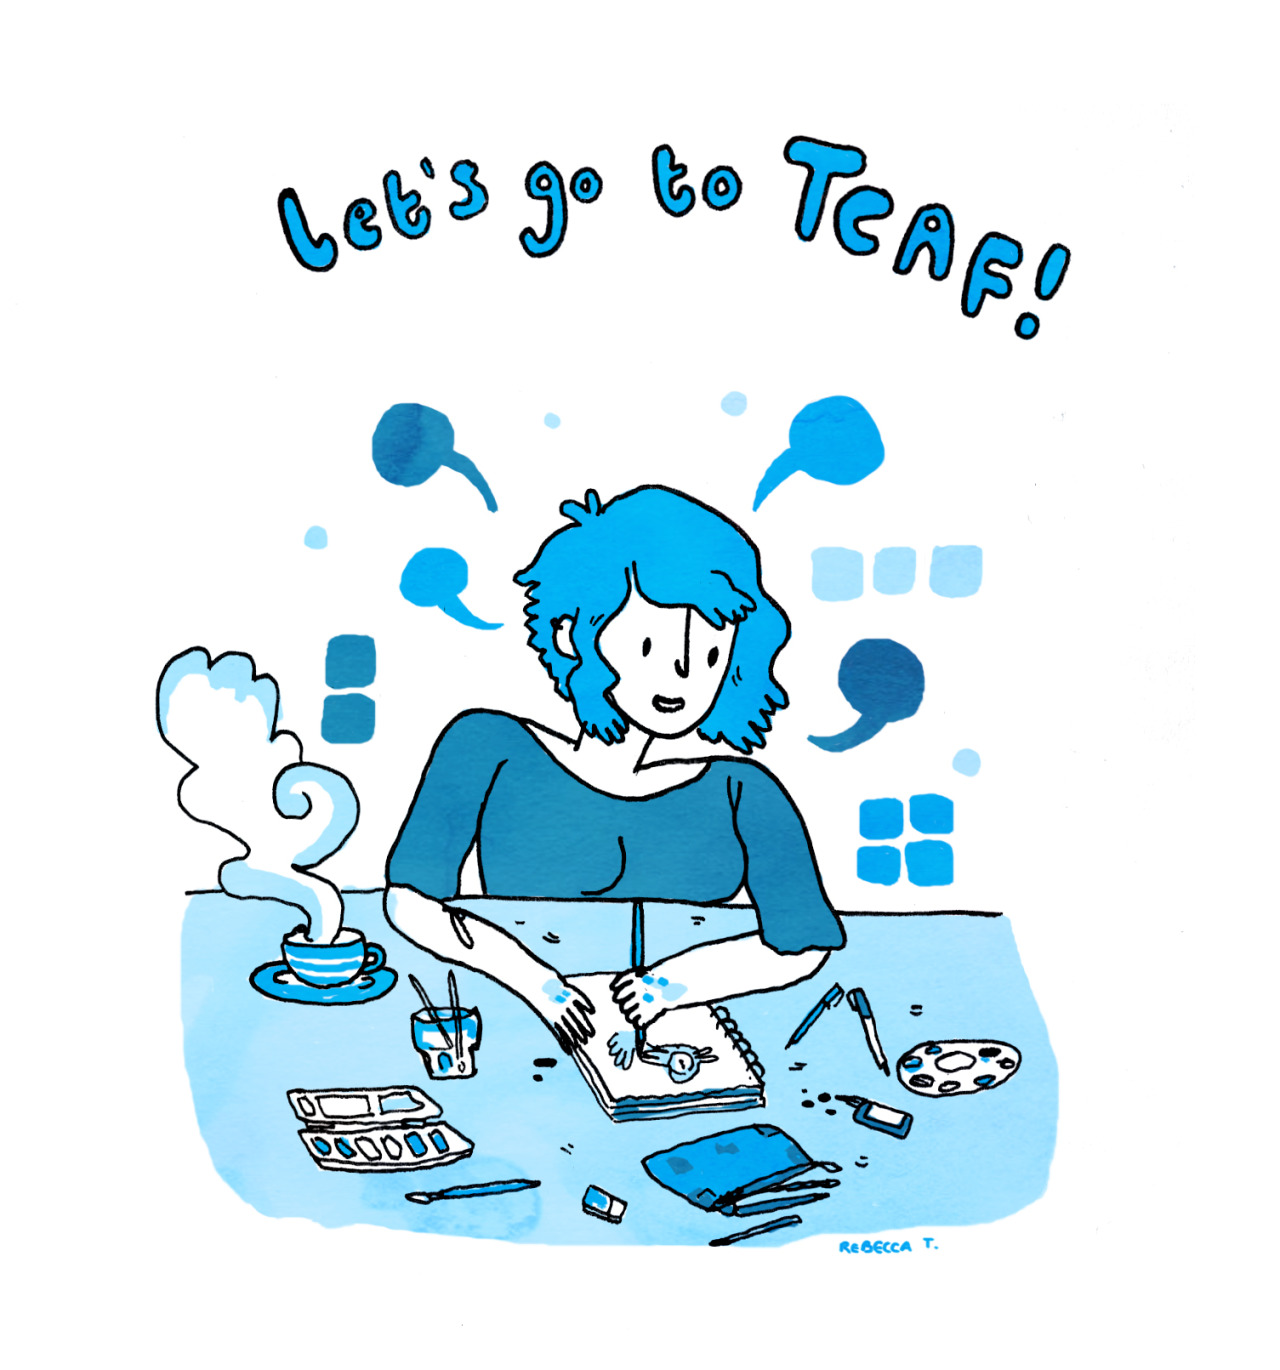 I'm trying to get to TCAF in May and I need your help! TCAF is a comics festival in Toronto, and I'm doing an Indiegogo to raise funds so I can travel there! If you donate, perks include minicomics and custom drawings! It'd mean the world to me if you donated or spread the word! I love you all!